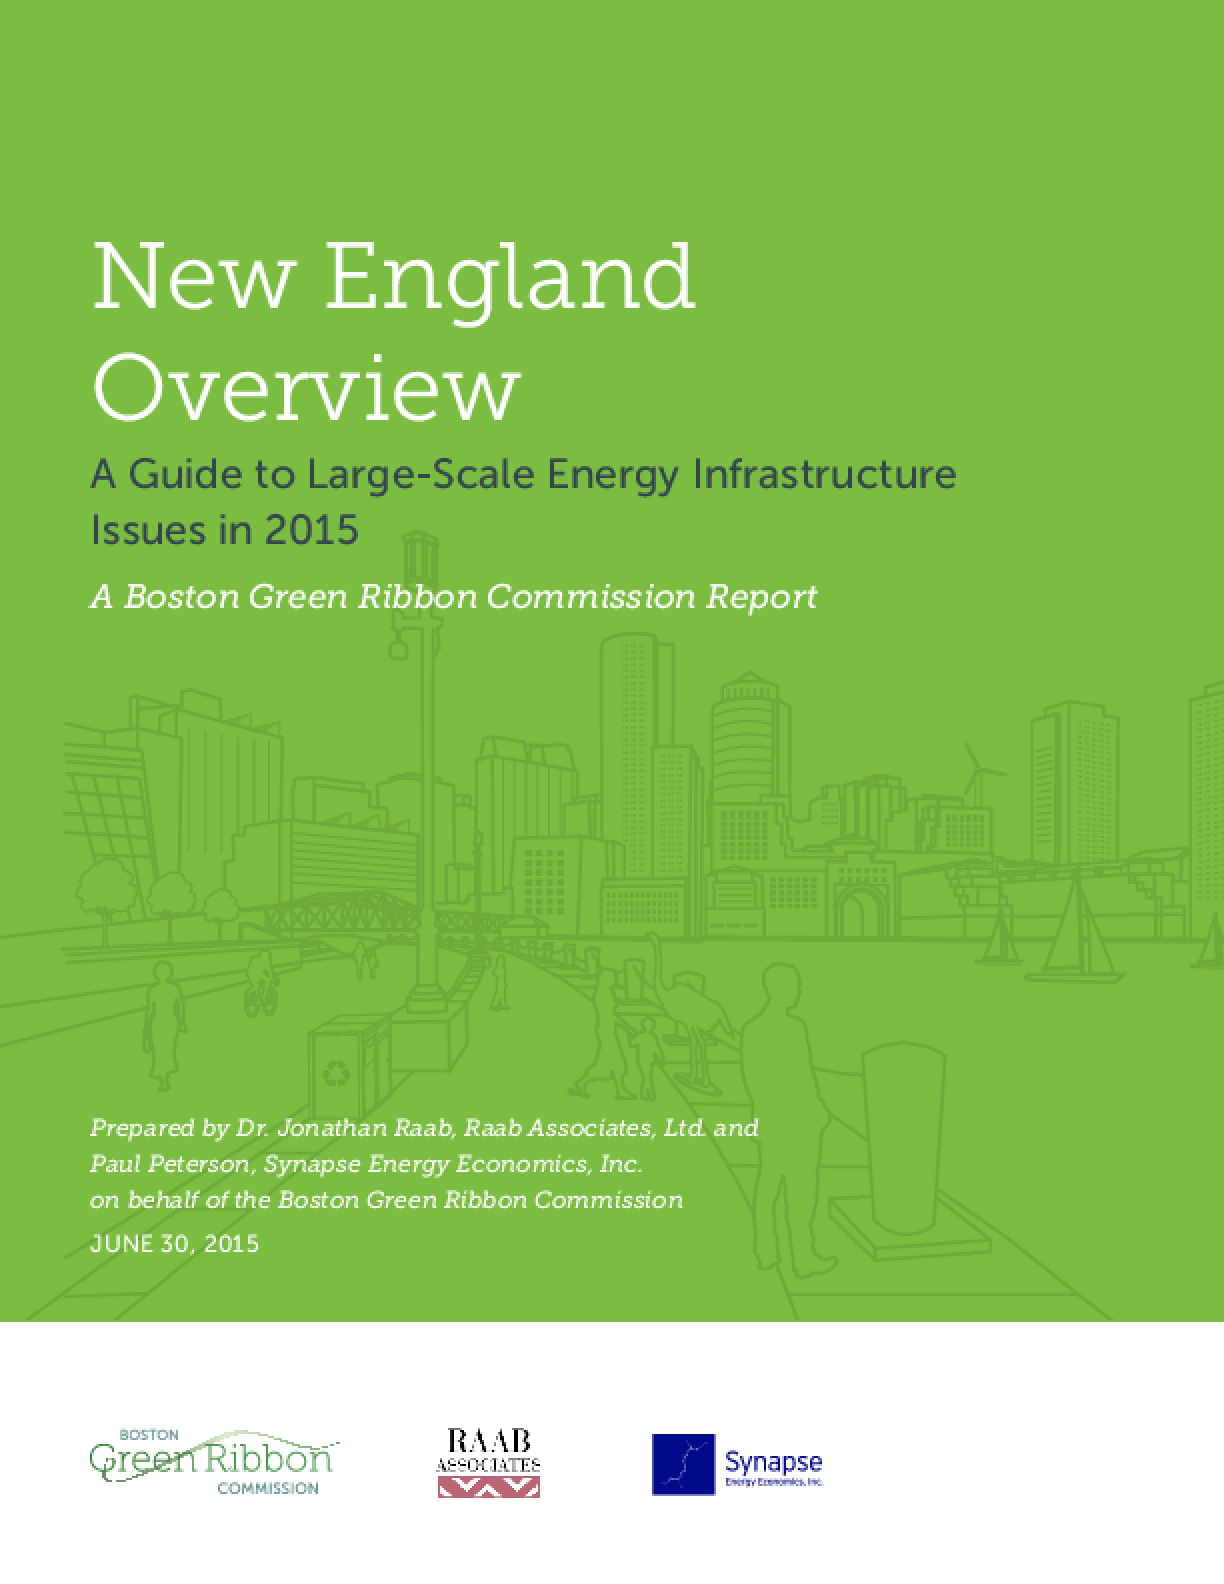 New England Overview: A Guide to Large-Scale Energy Infrastructure Issues in 2015